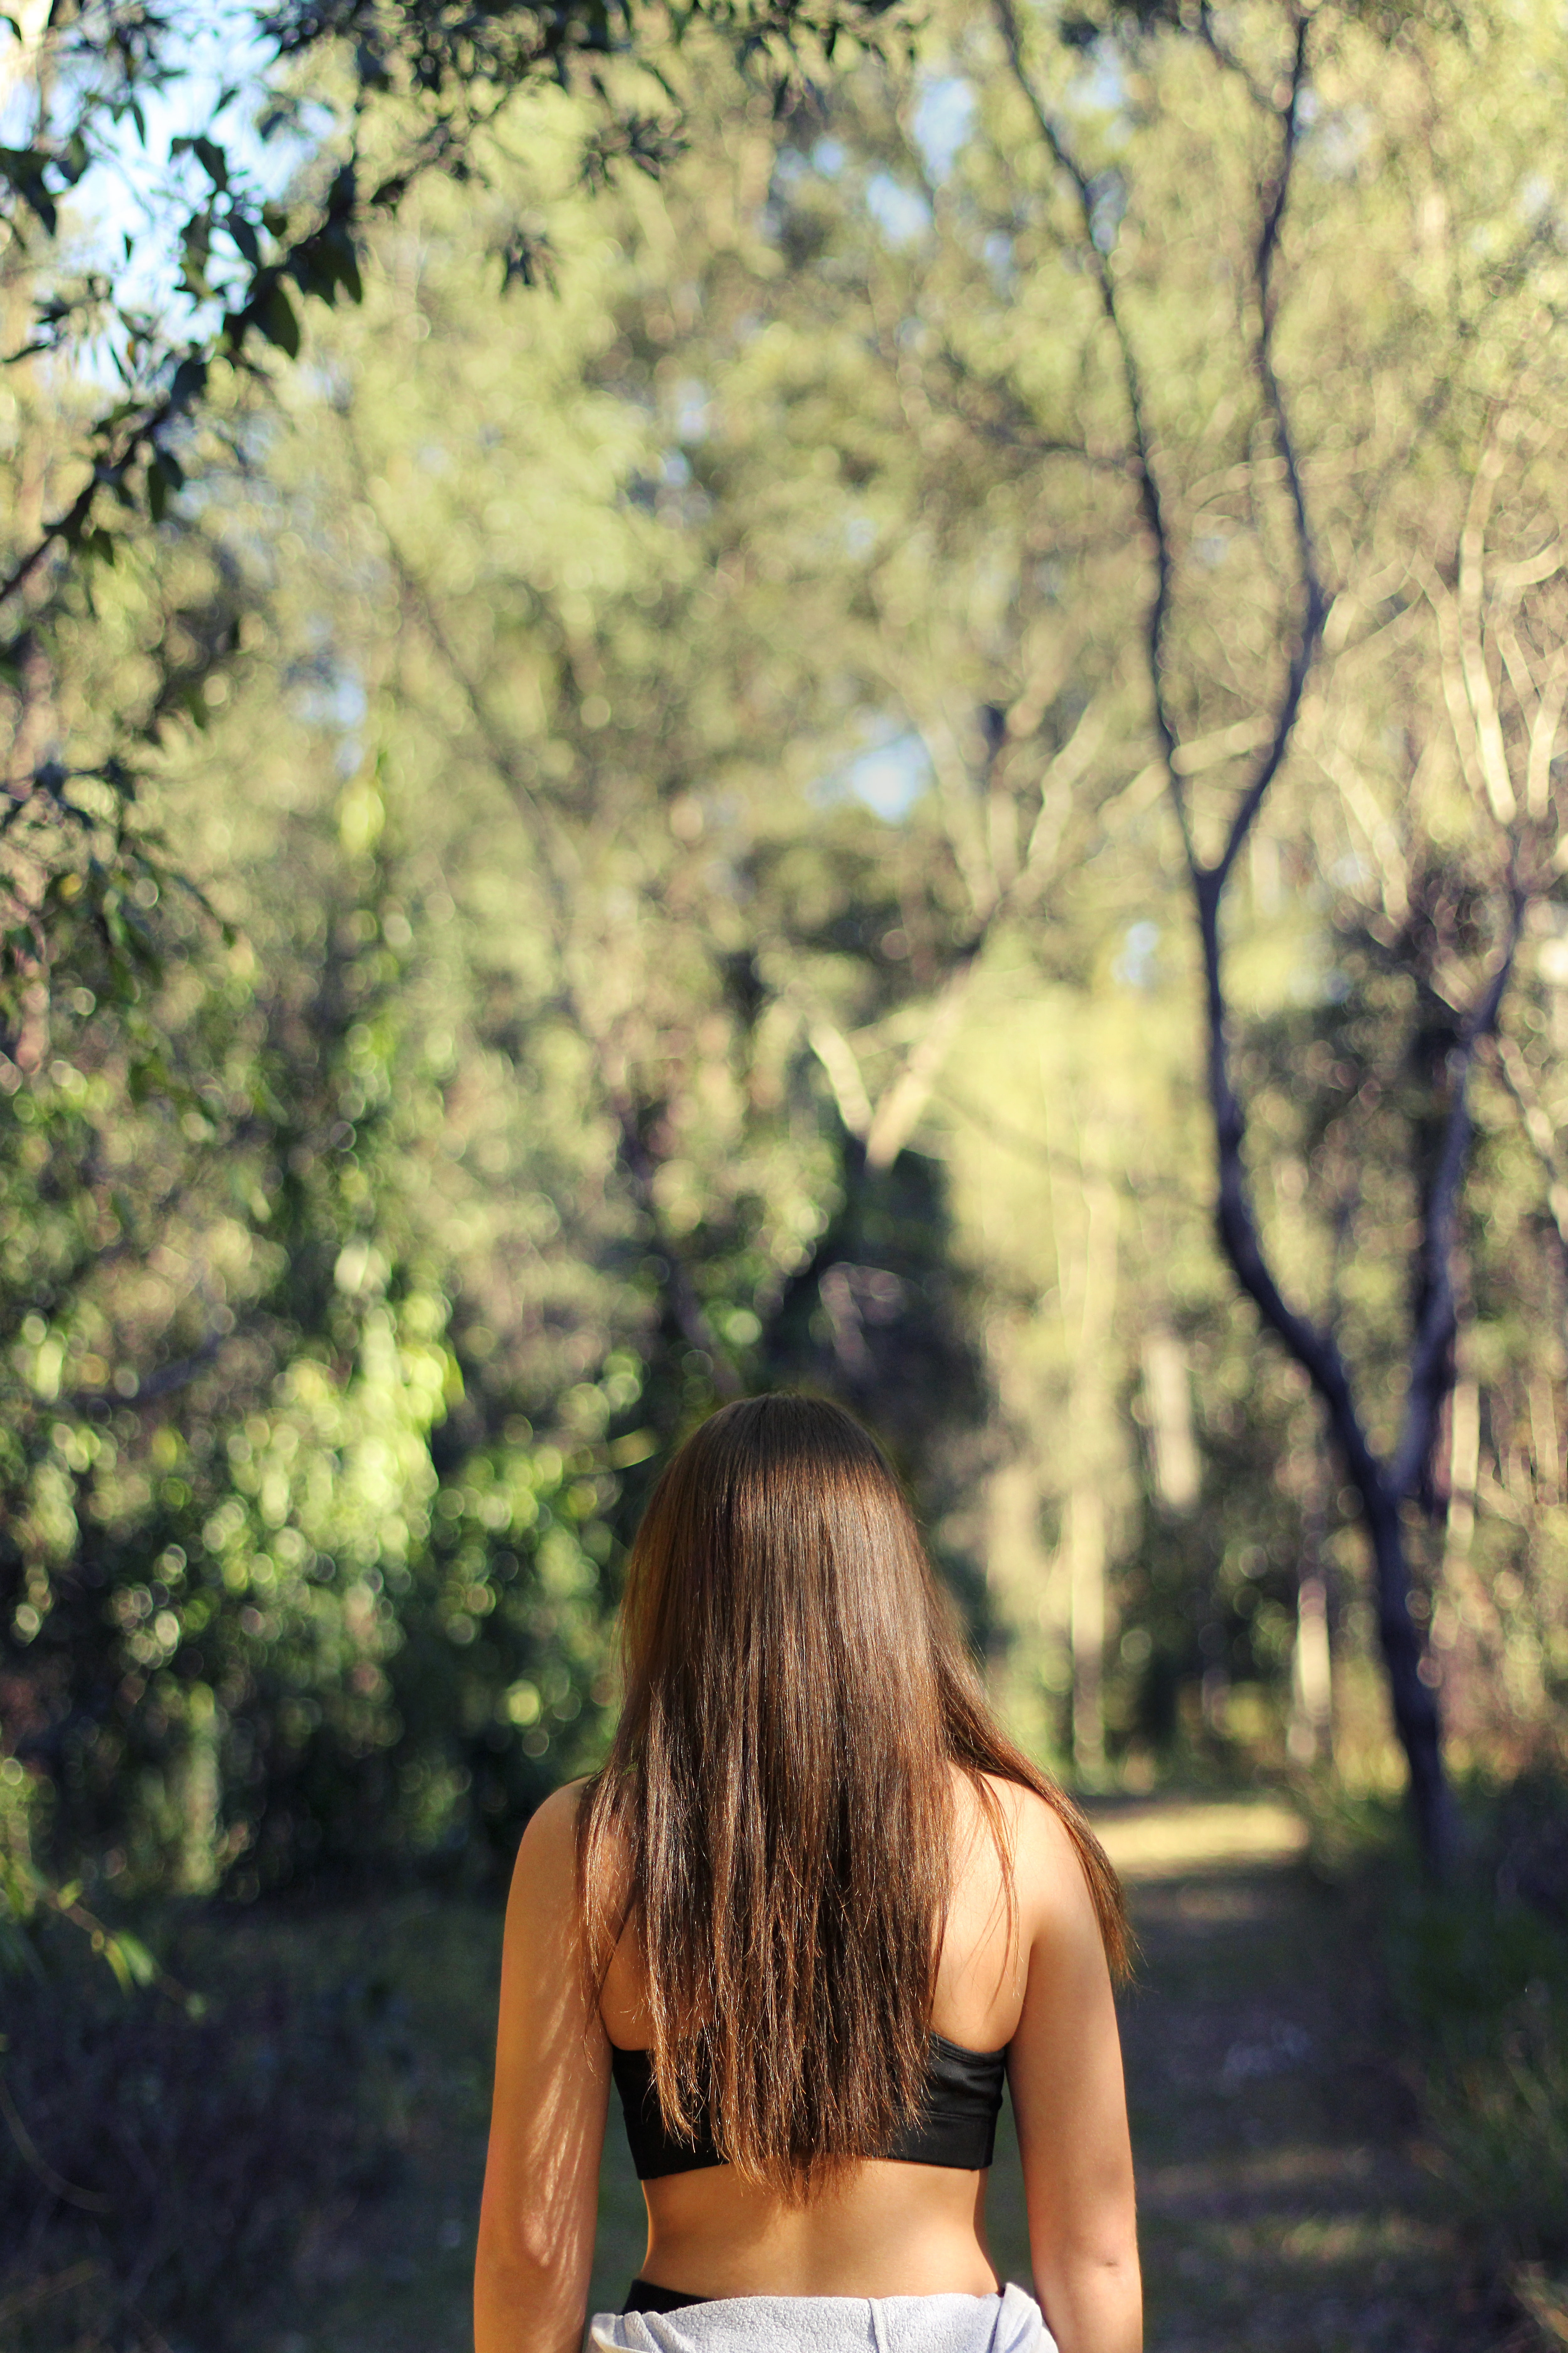 woman wearing black sports bra facing the woods